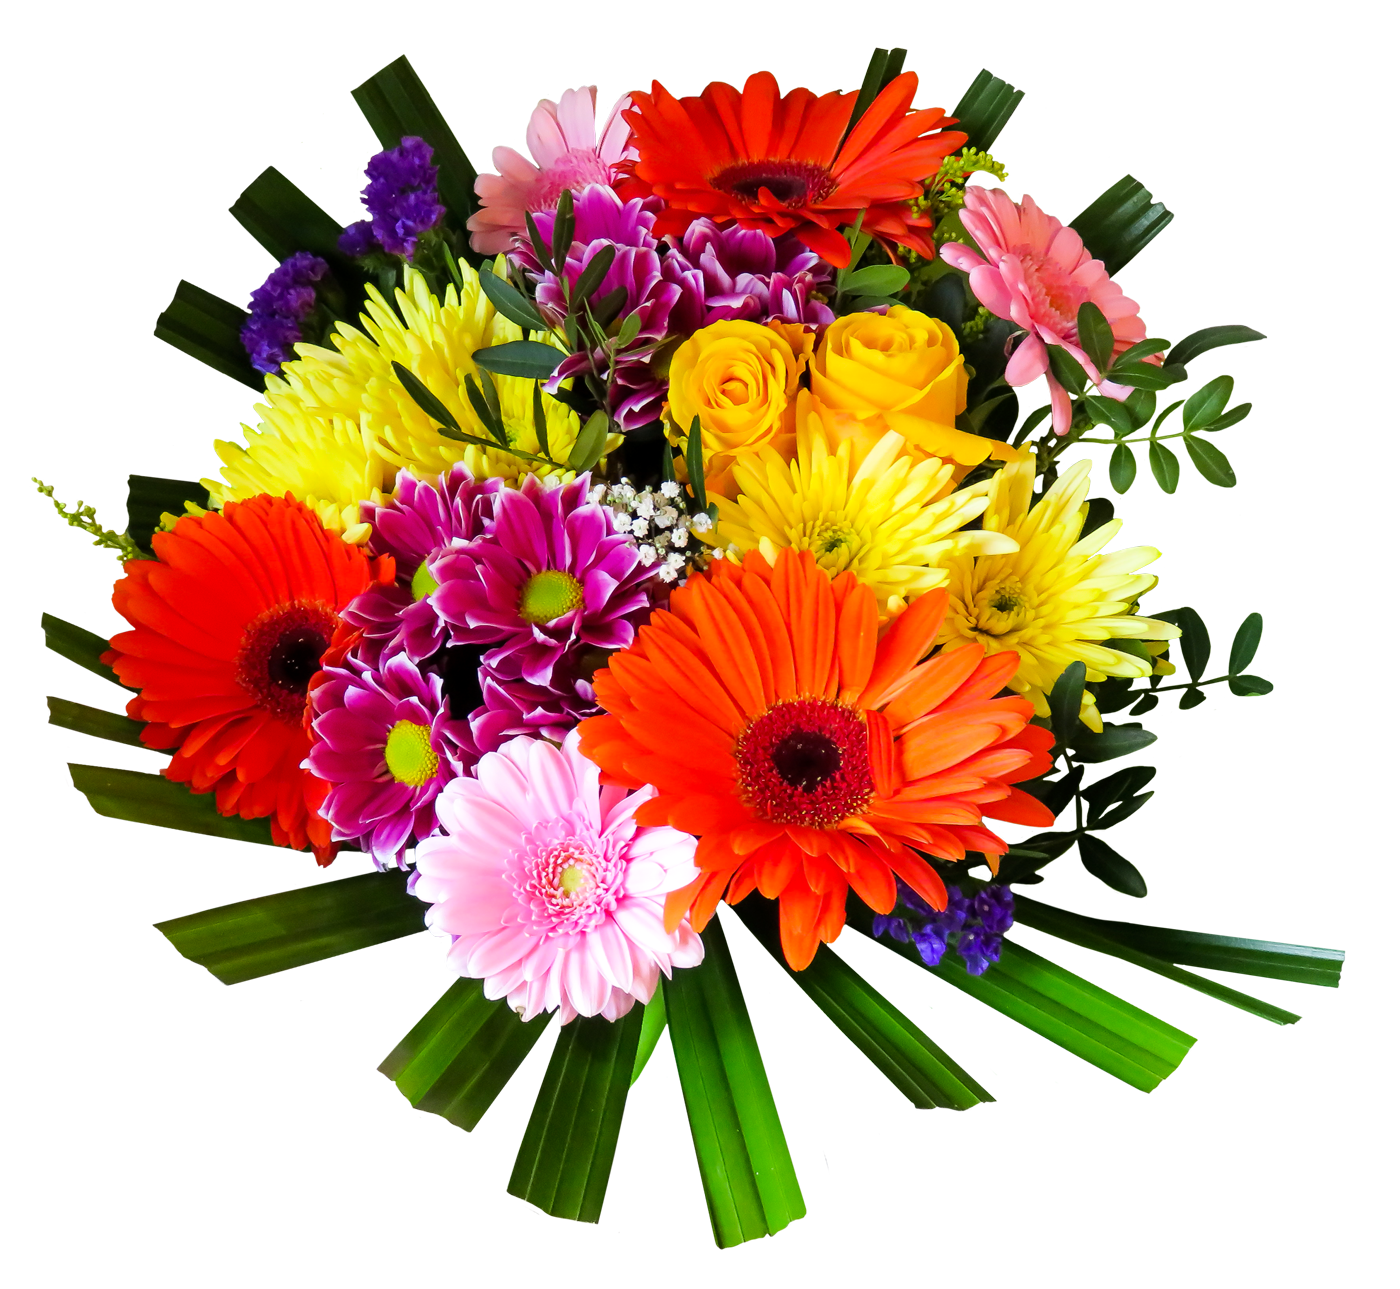 Flower Bouquet PNG Transparent Image - Flower PNG